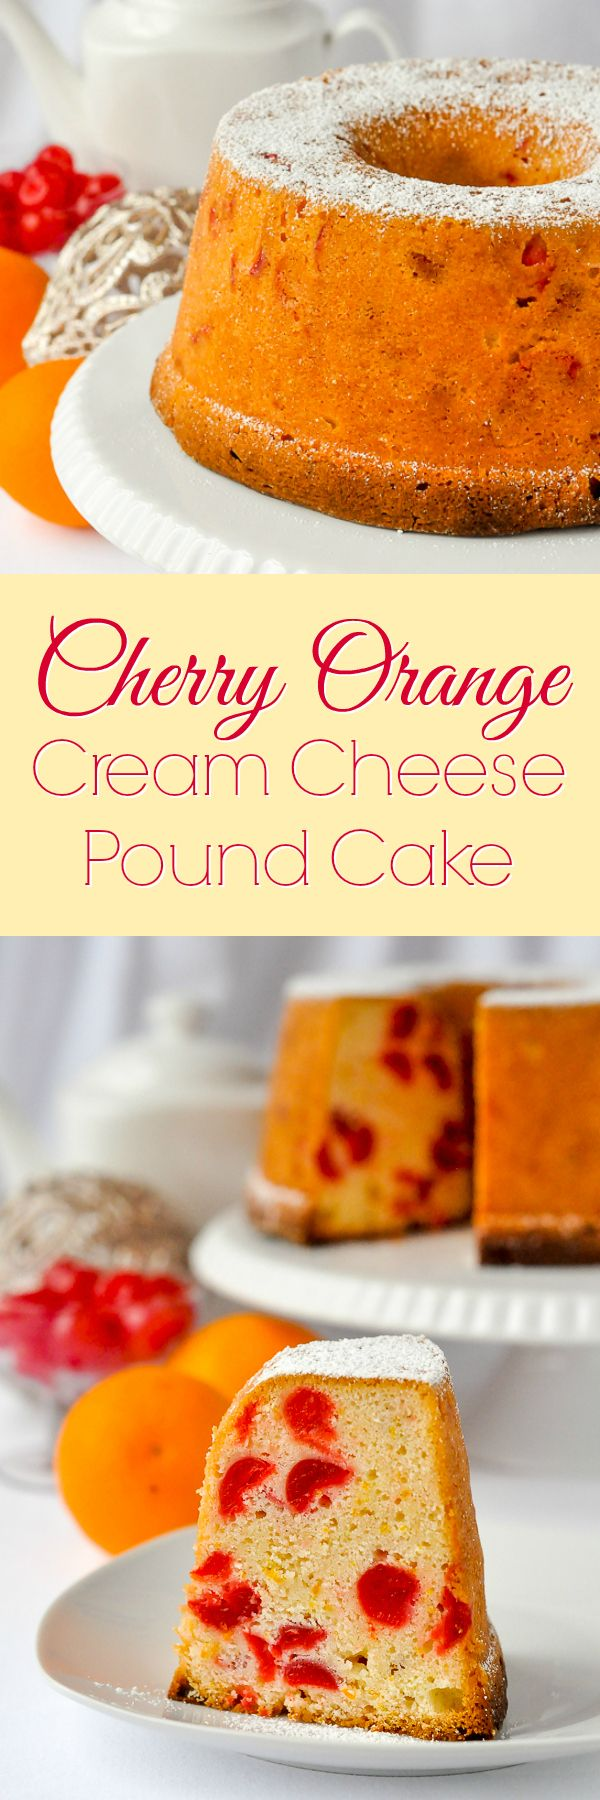 Orange Cherry Cream Cheese Pound Cake - sweet maraschino cherries suspended in a buttery cream cheese batter that's been infused with orange flavour. A great Christmas cake to make in advance for the holiday freezer.